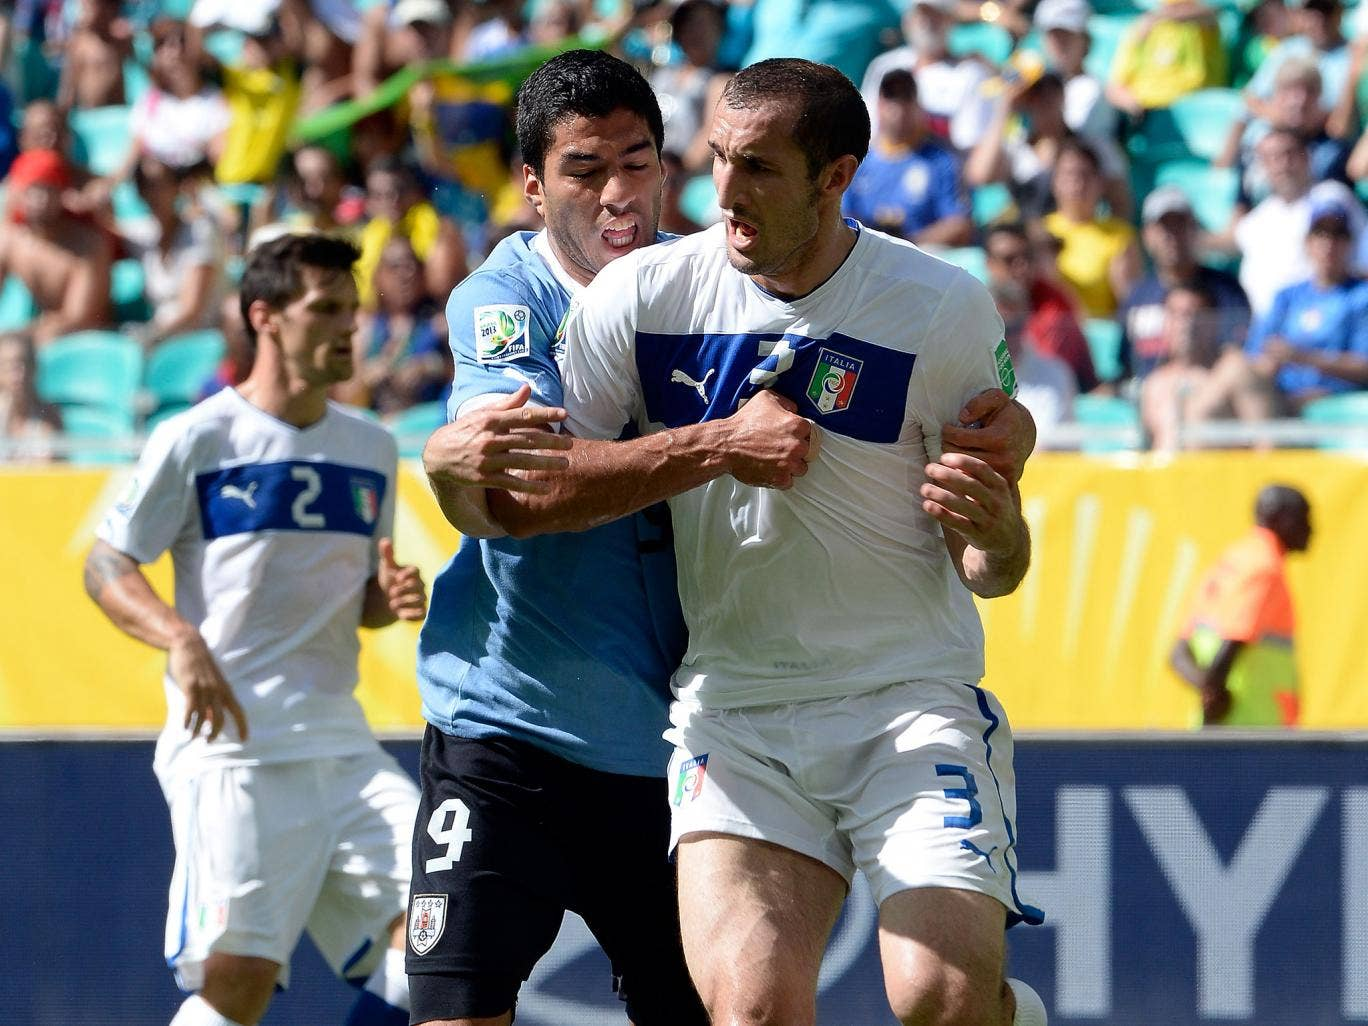 Suarez can be seen trying to bite Chiellini's shoulder during the match